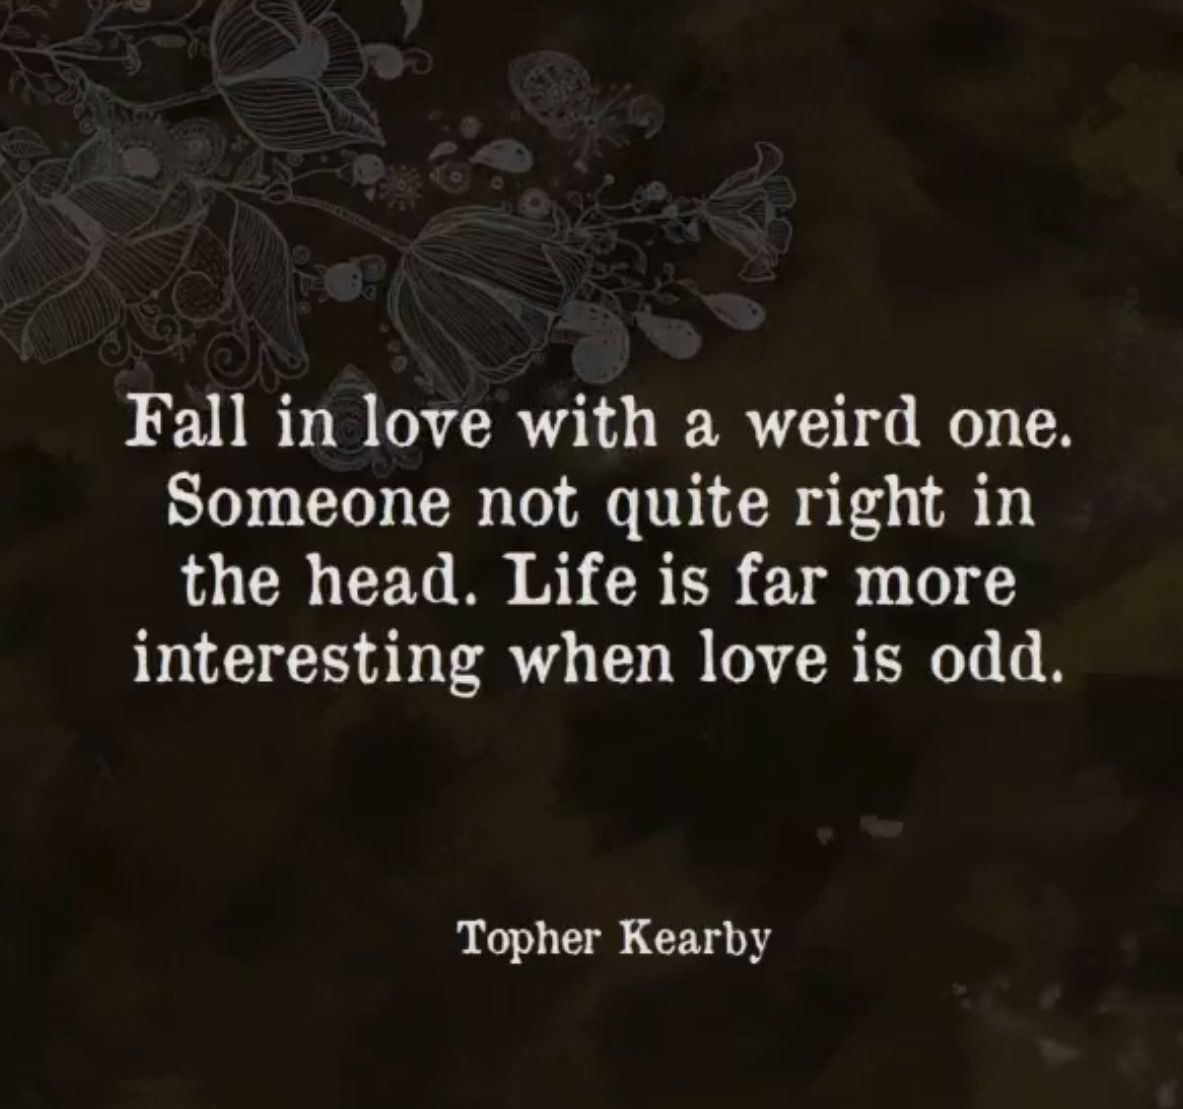 Pin by Rebekah Moore on Quotes | Falling in love, Quotes, Life